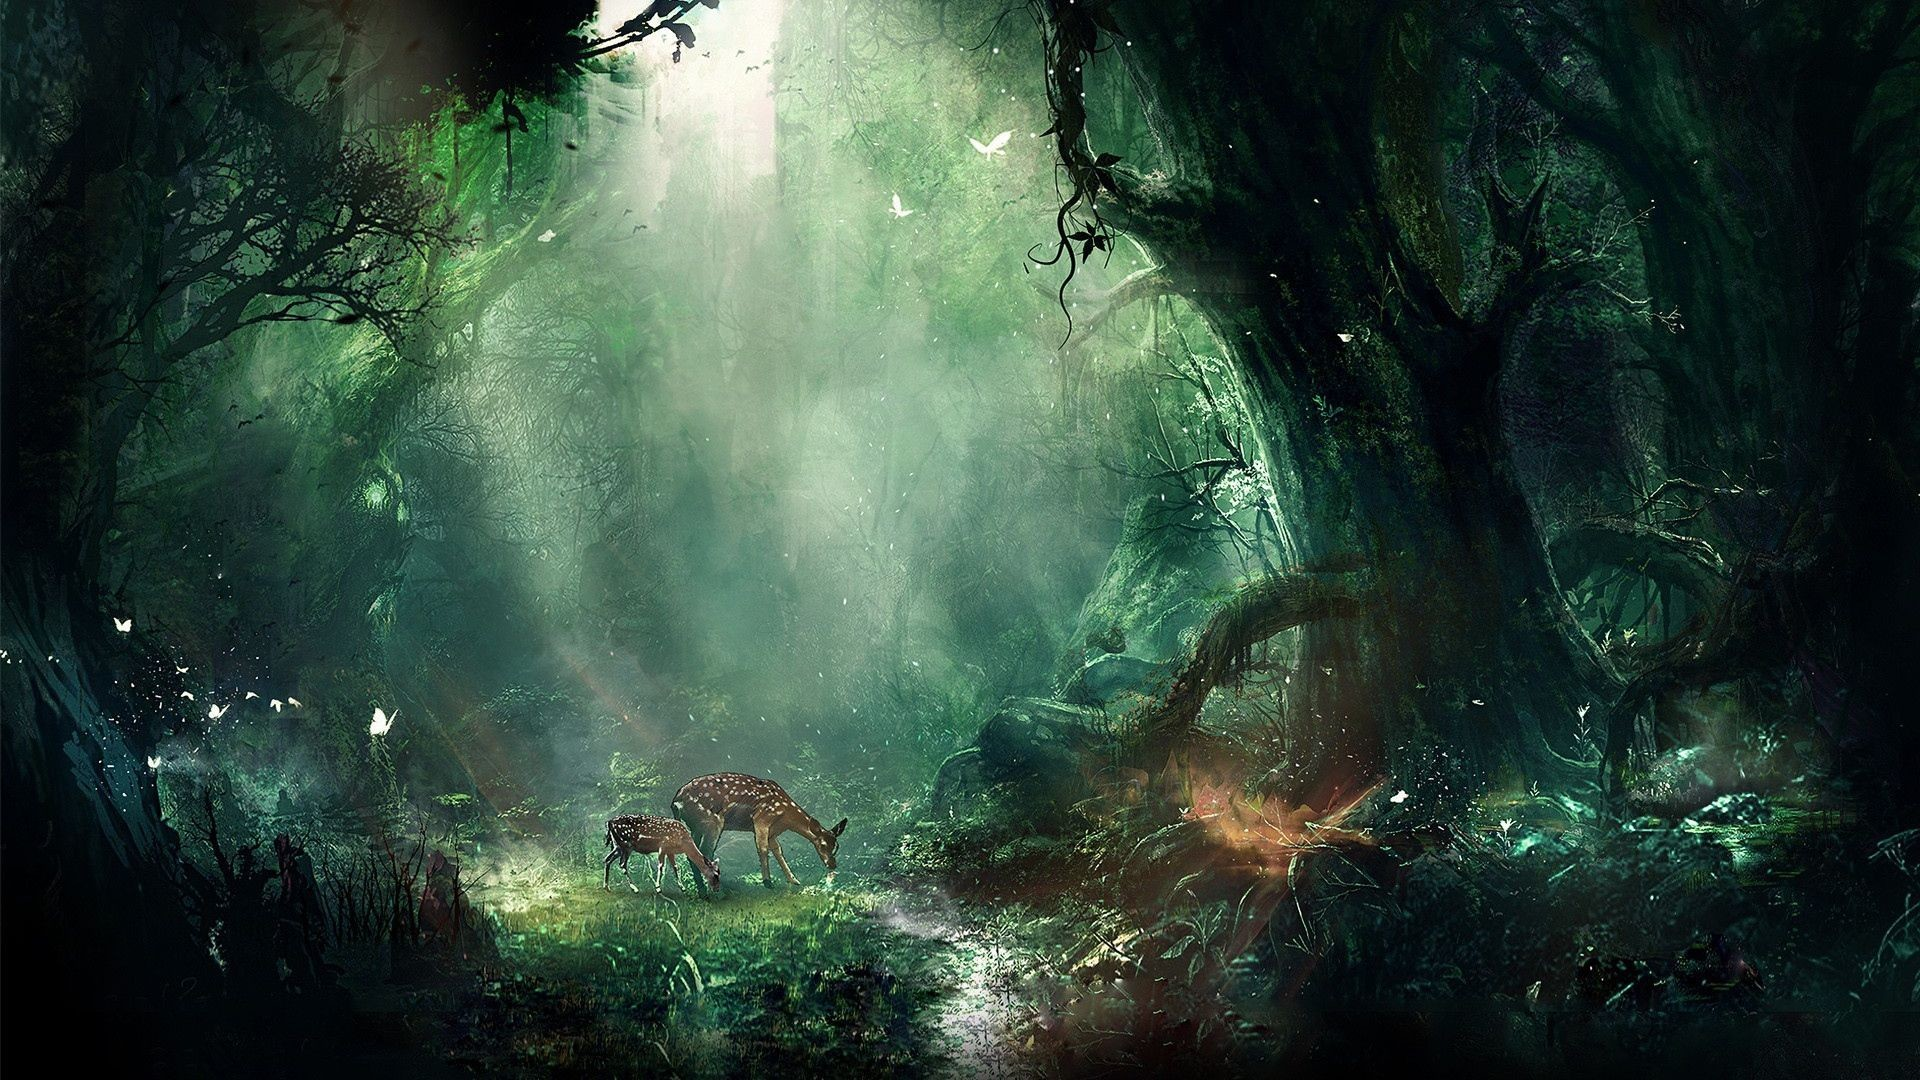 Fantasy Hd Wallpapers 1920x1080 83 Background Pictures